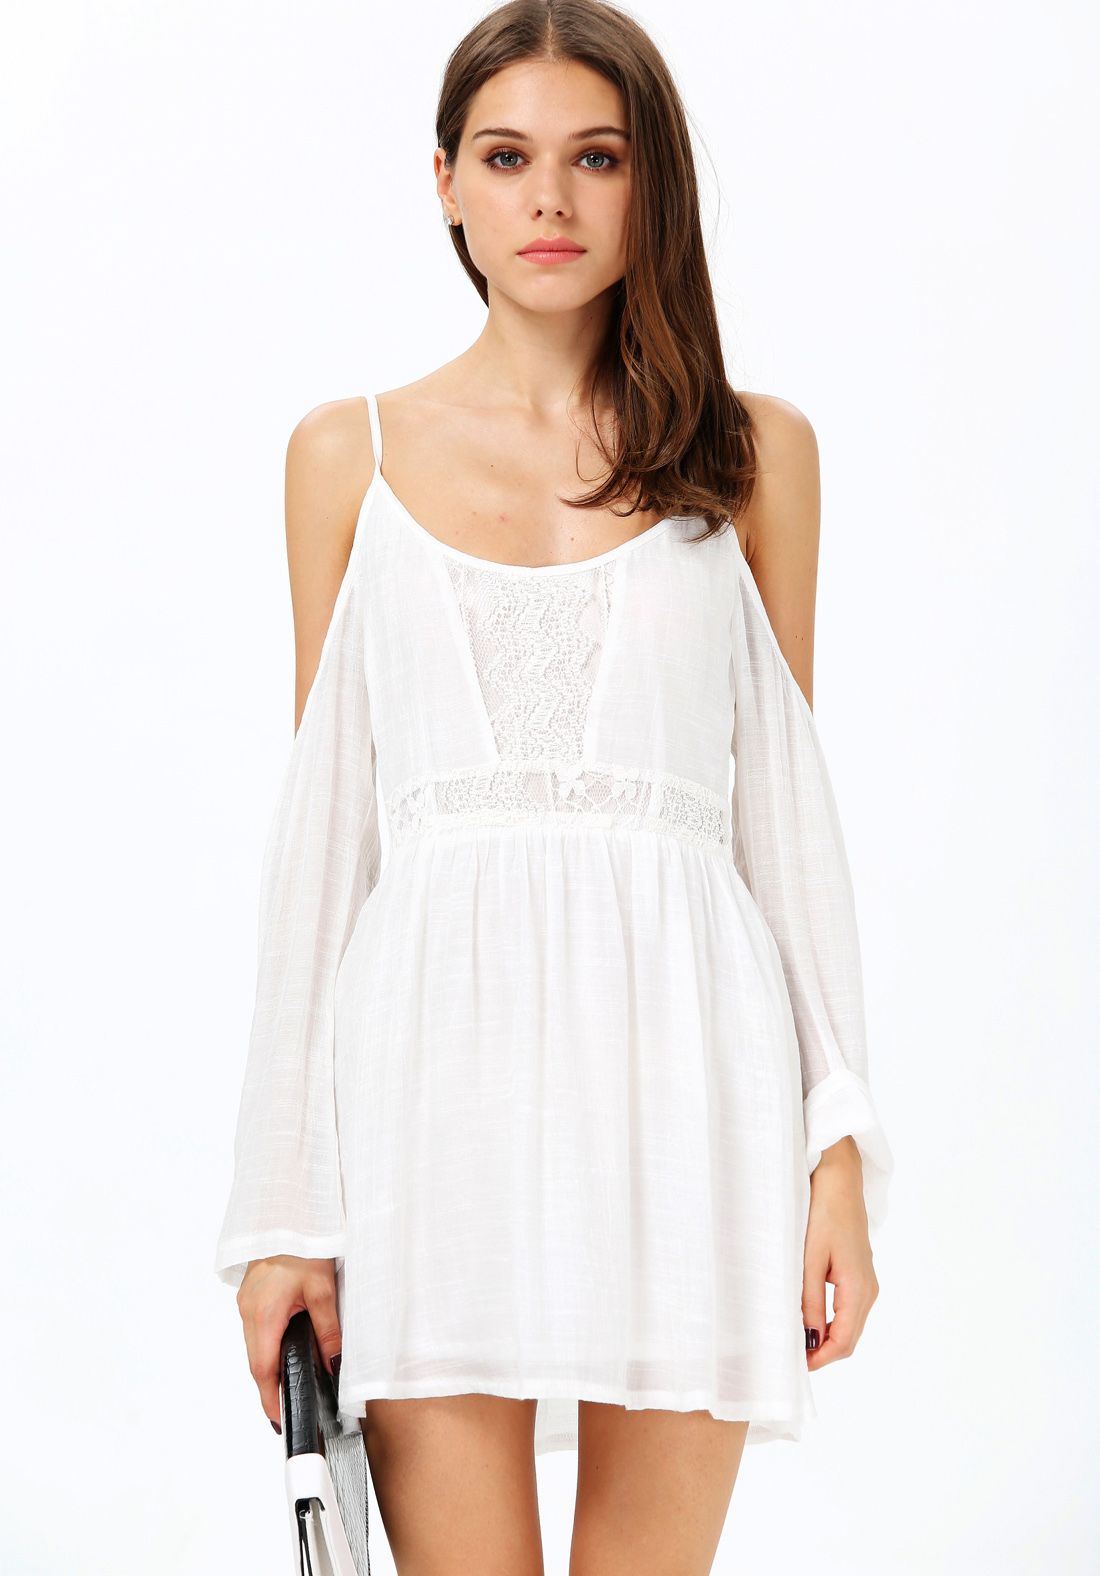 White Spaghetti Strap Off the Shoulder Embroidered Dres | Women's ...